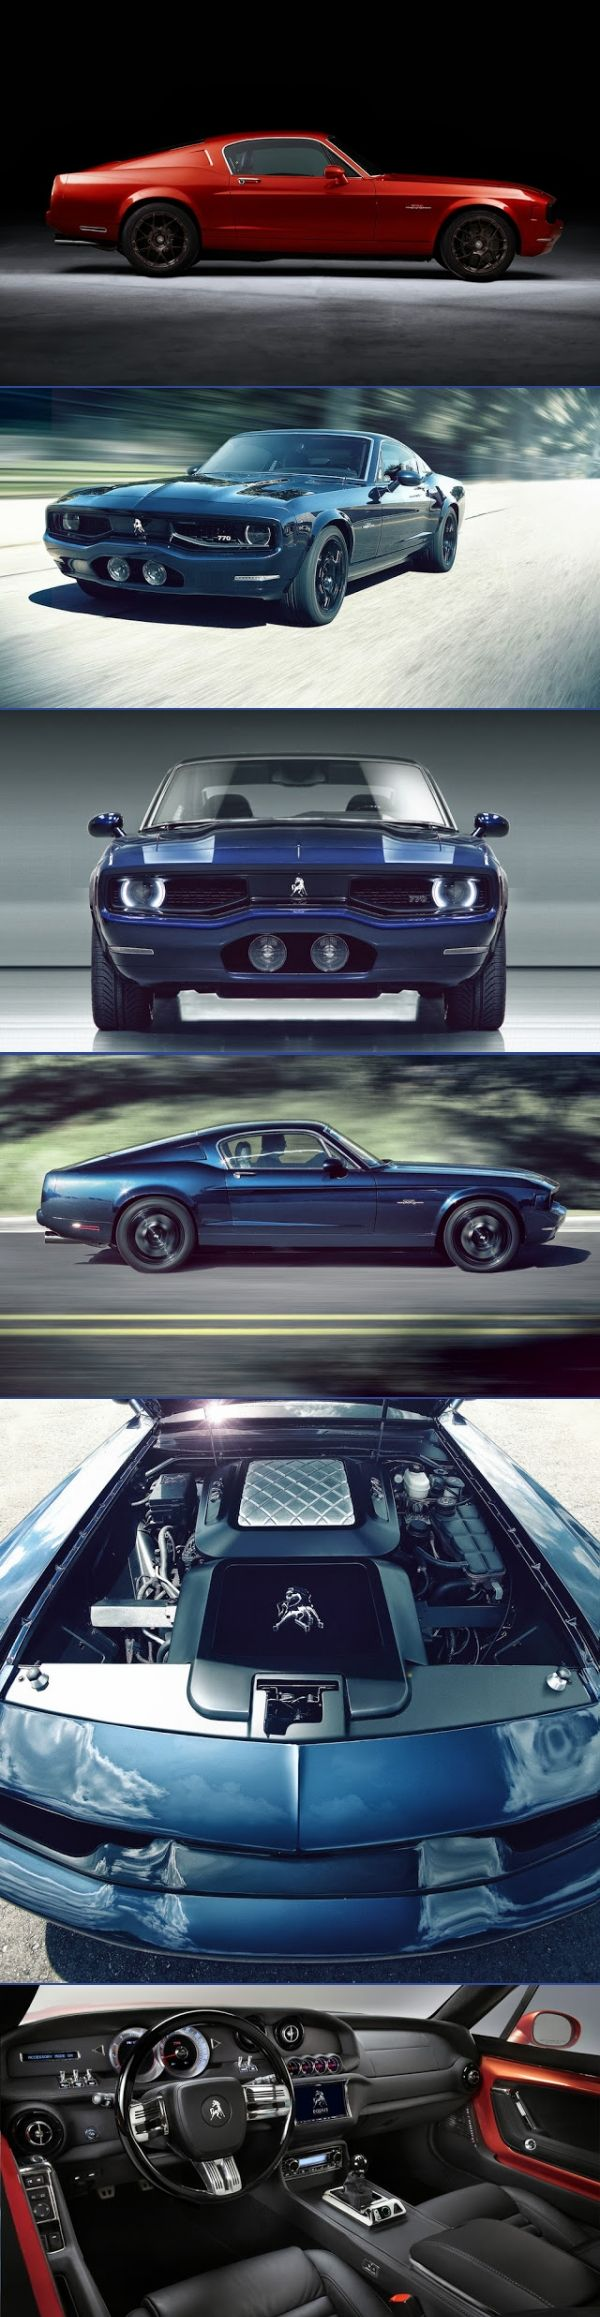 51 best images about equus bass 770 on pinterest cars muscle and the muscle. Black Bedroom Furniture Sets. Home Design Ideas